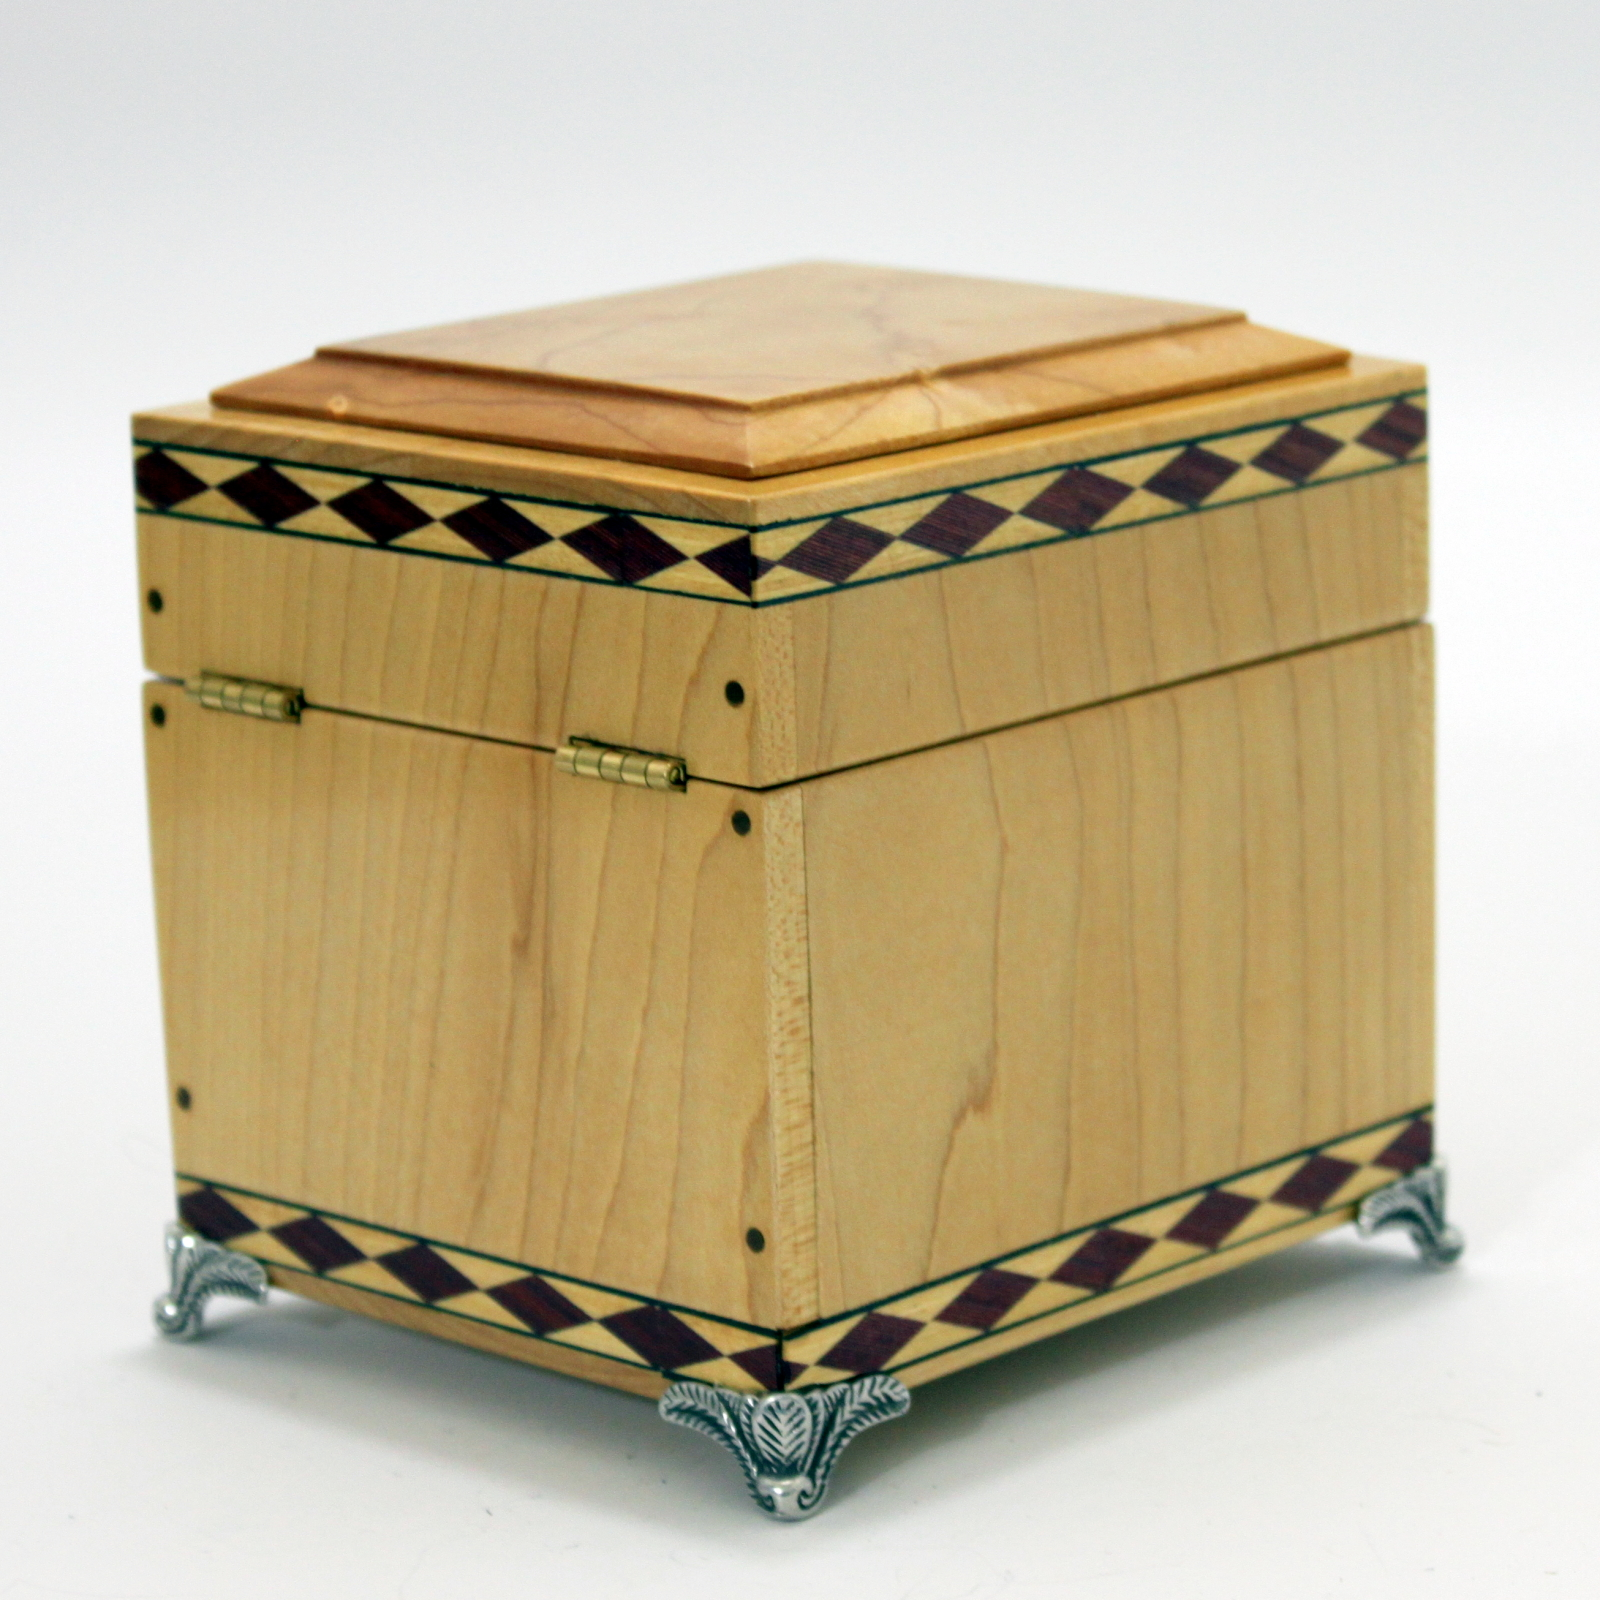 Harlequin Box (Hard Maple) by Dave Powell